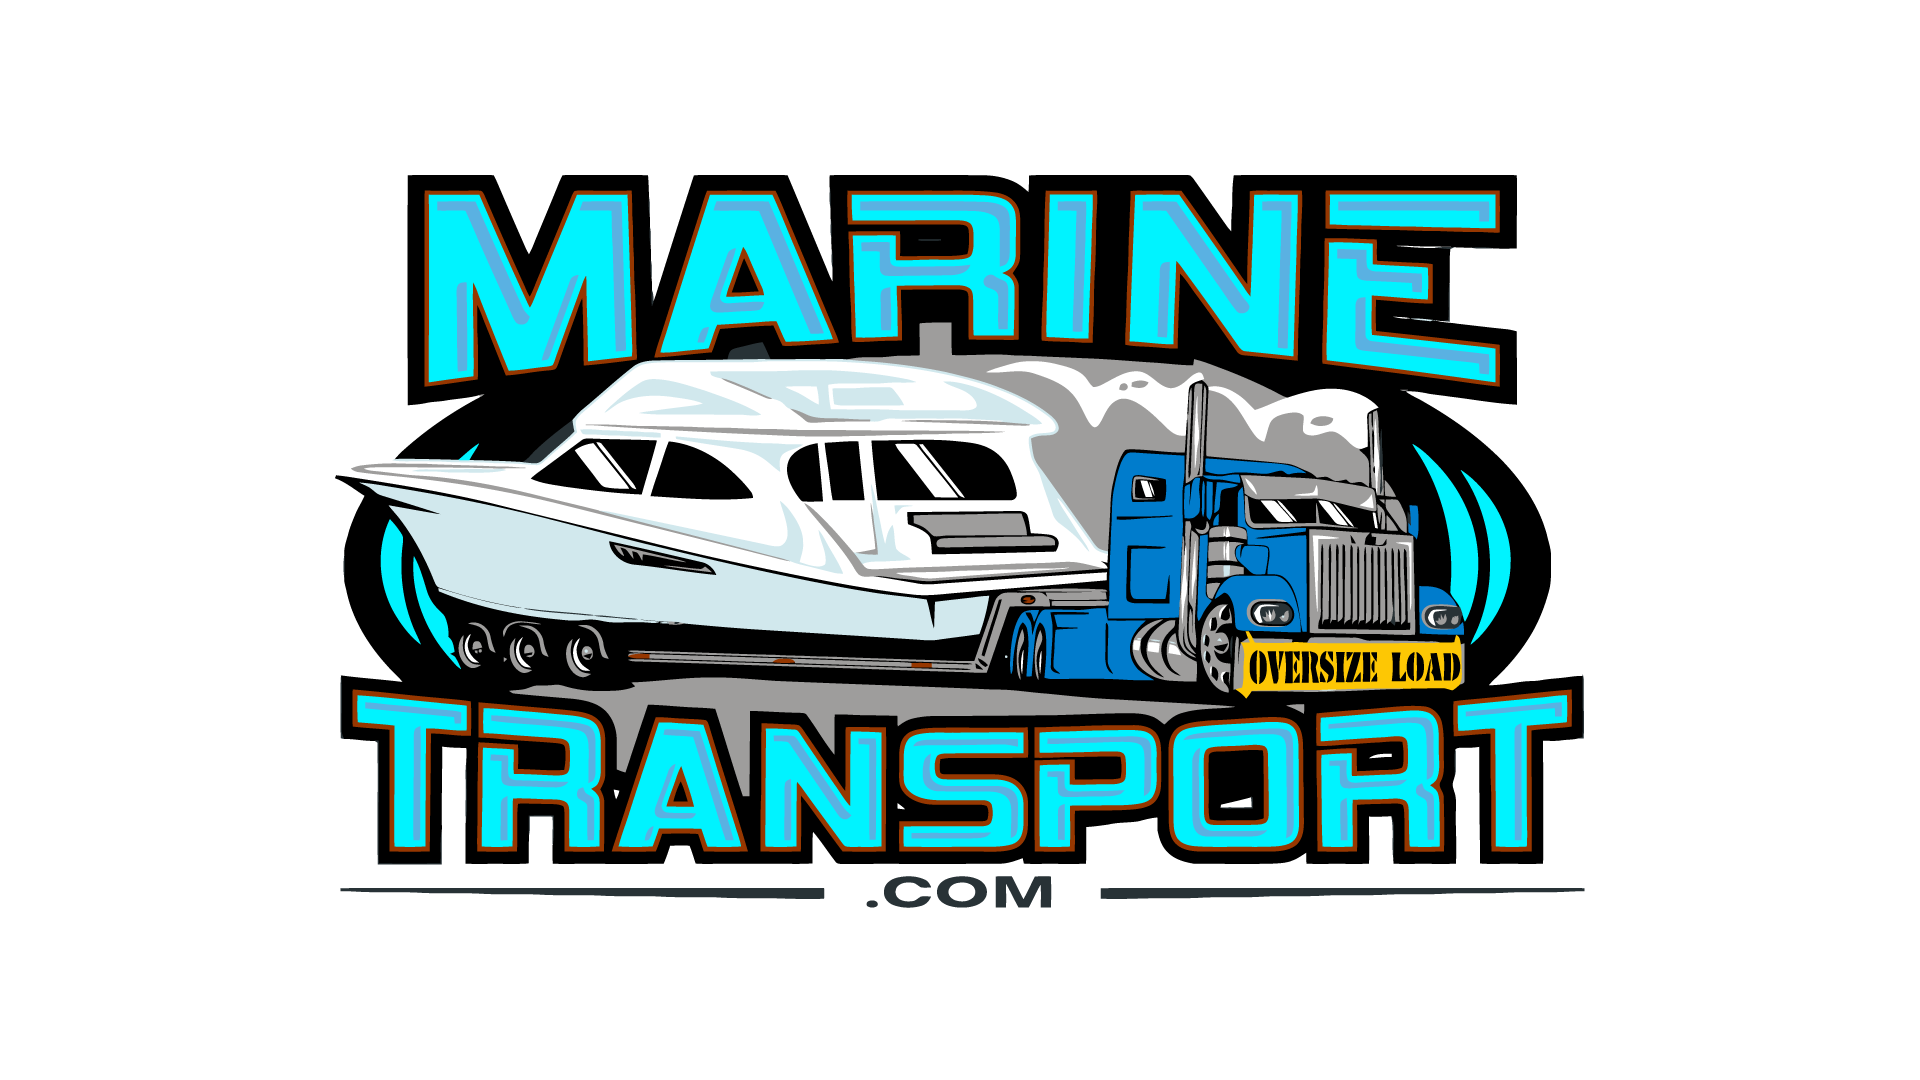 Marine Transport, Inc.